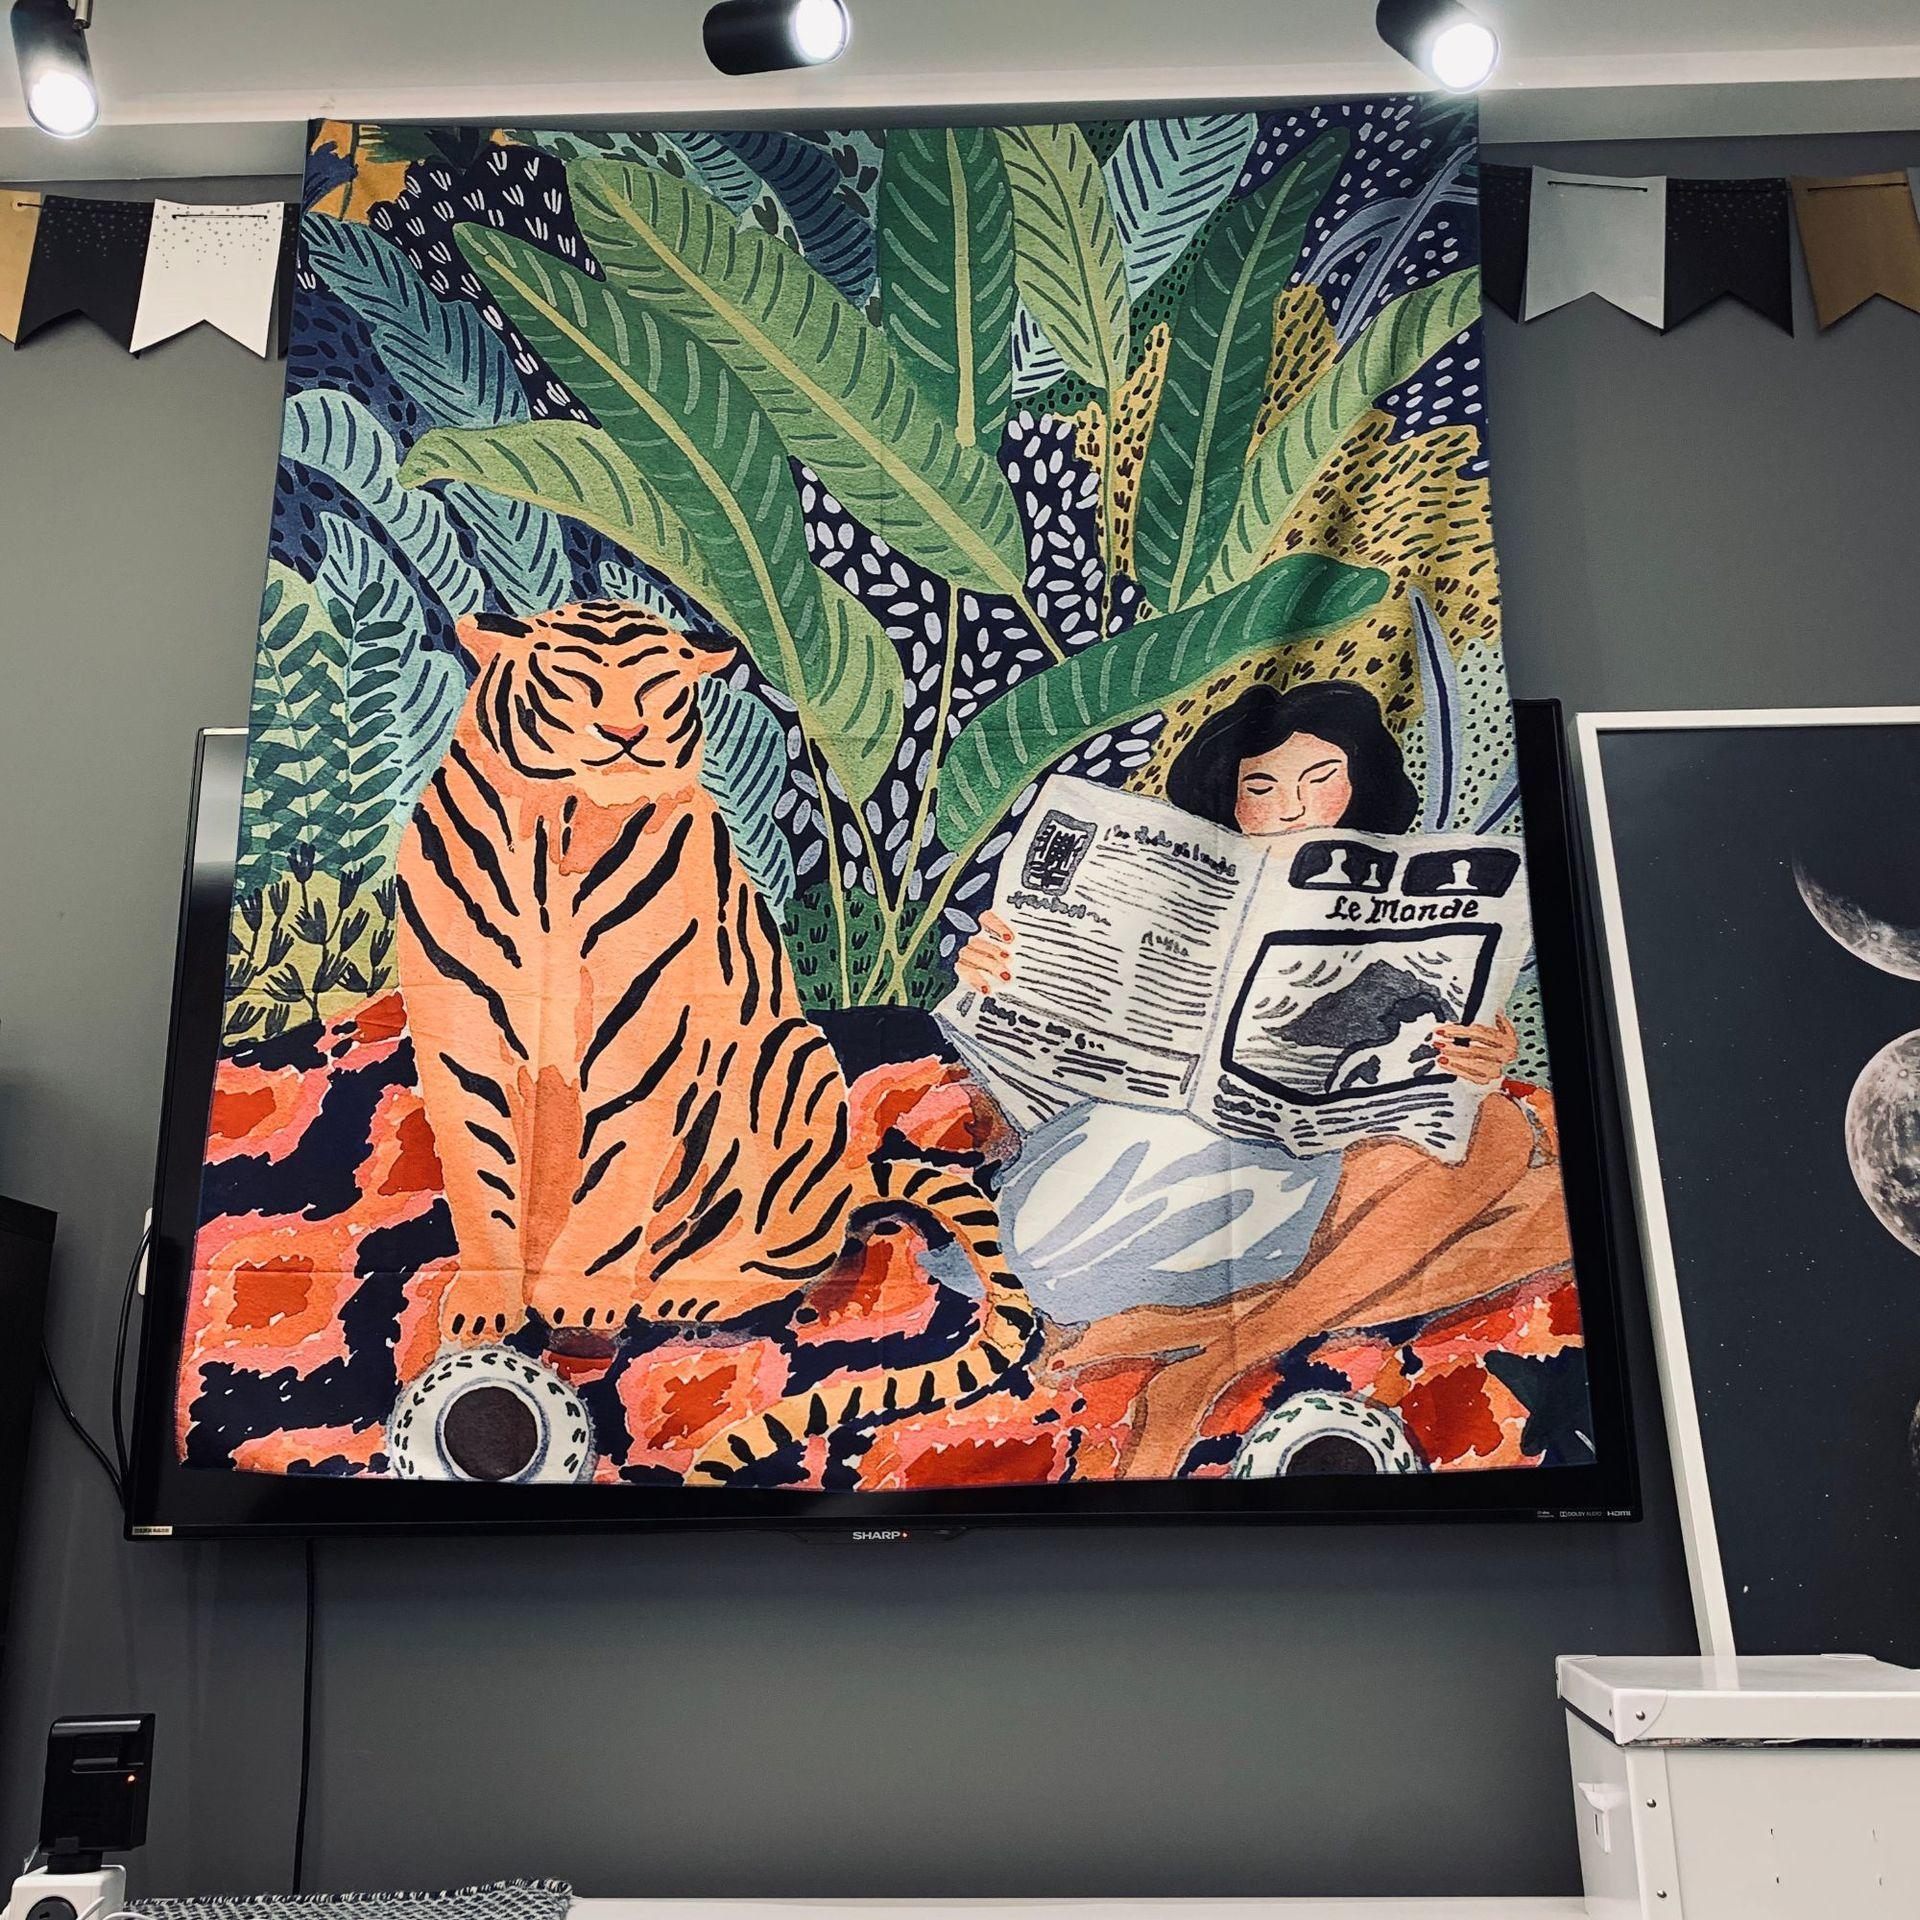 Original Design Chambre Tapestry Personnalité Jungle Tiger fille Tapisserie Tenture TapestryTapestry Walldecor CX200630